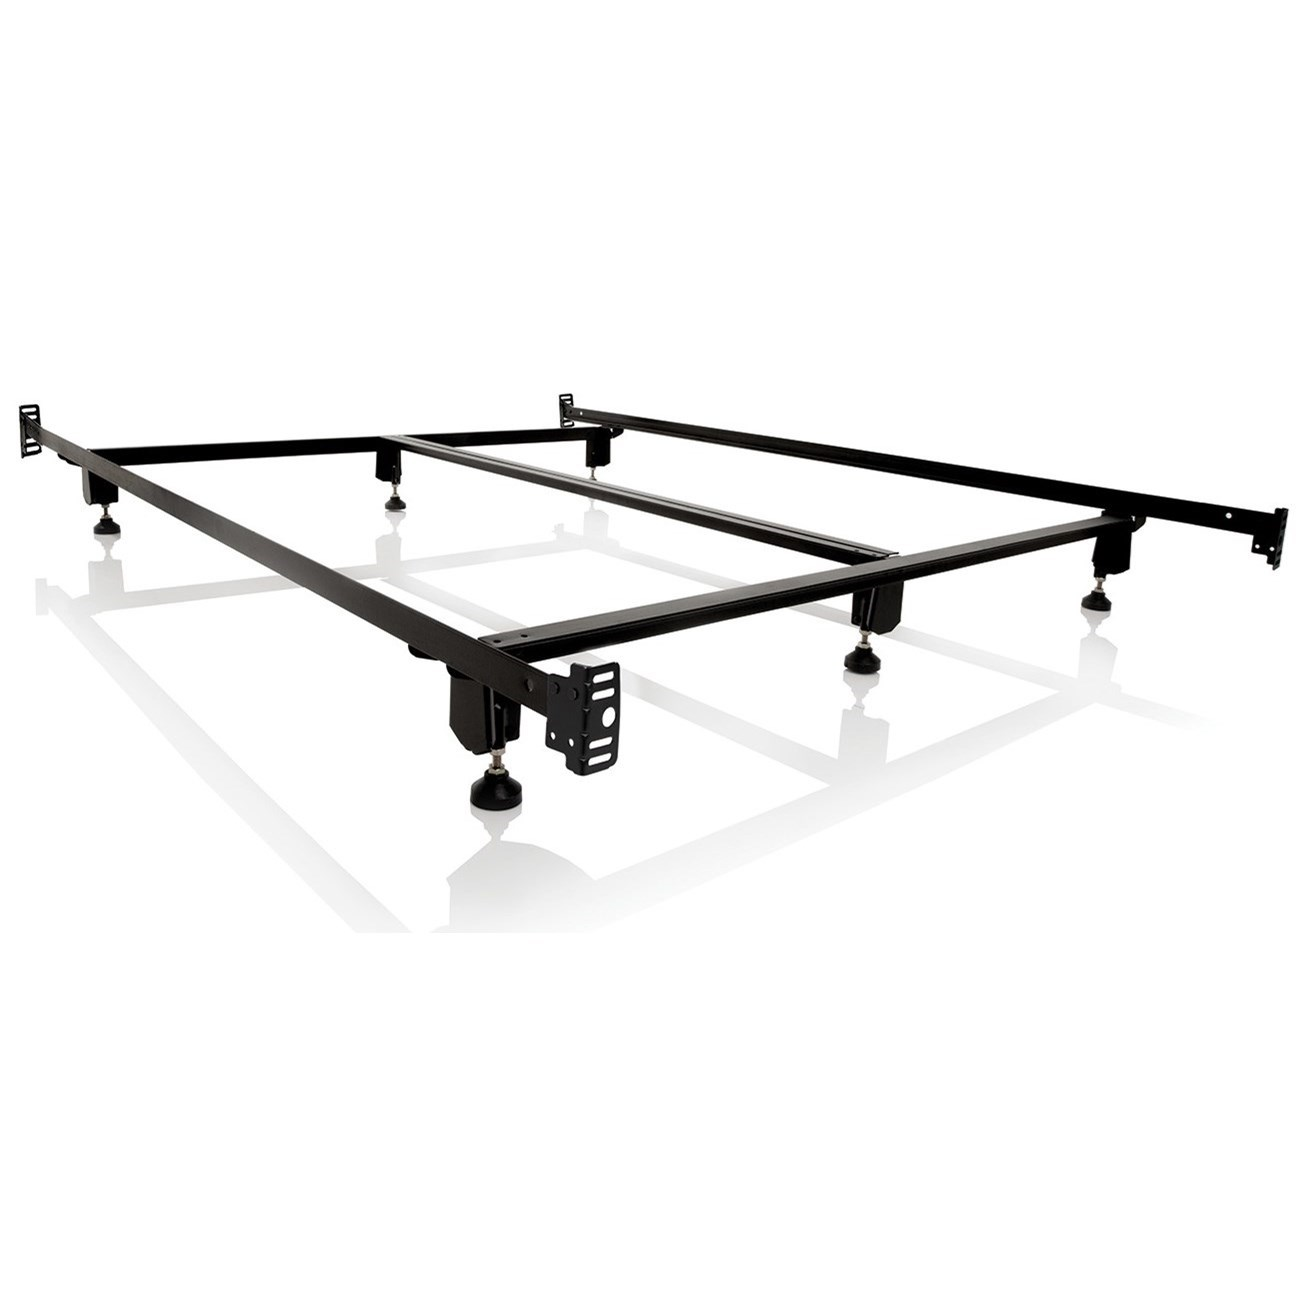 Malouf Steelock Full Steelock Bolt-On Bed Frame - Item Number: STHFFFSL